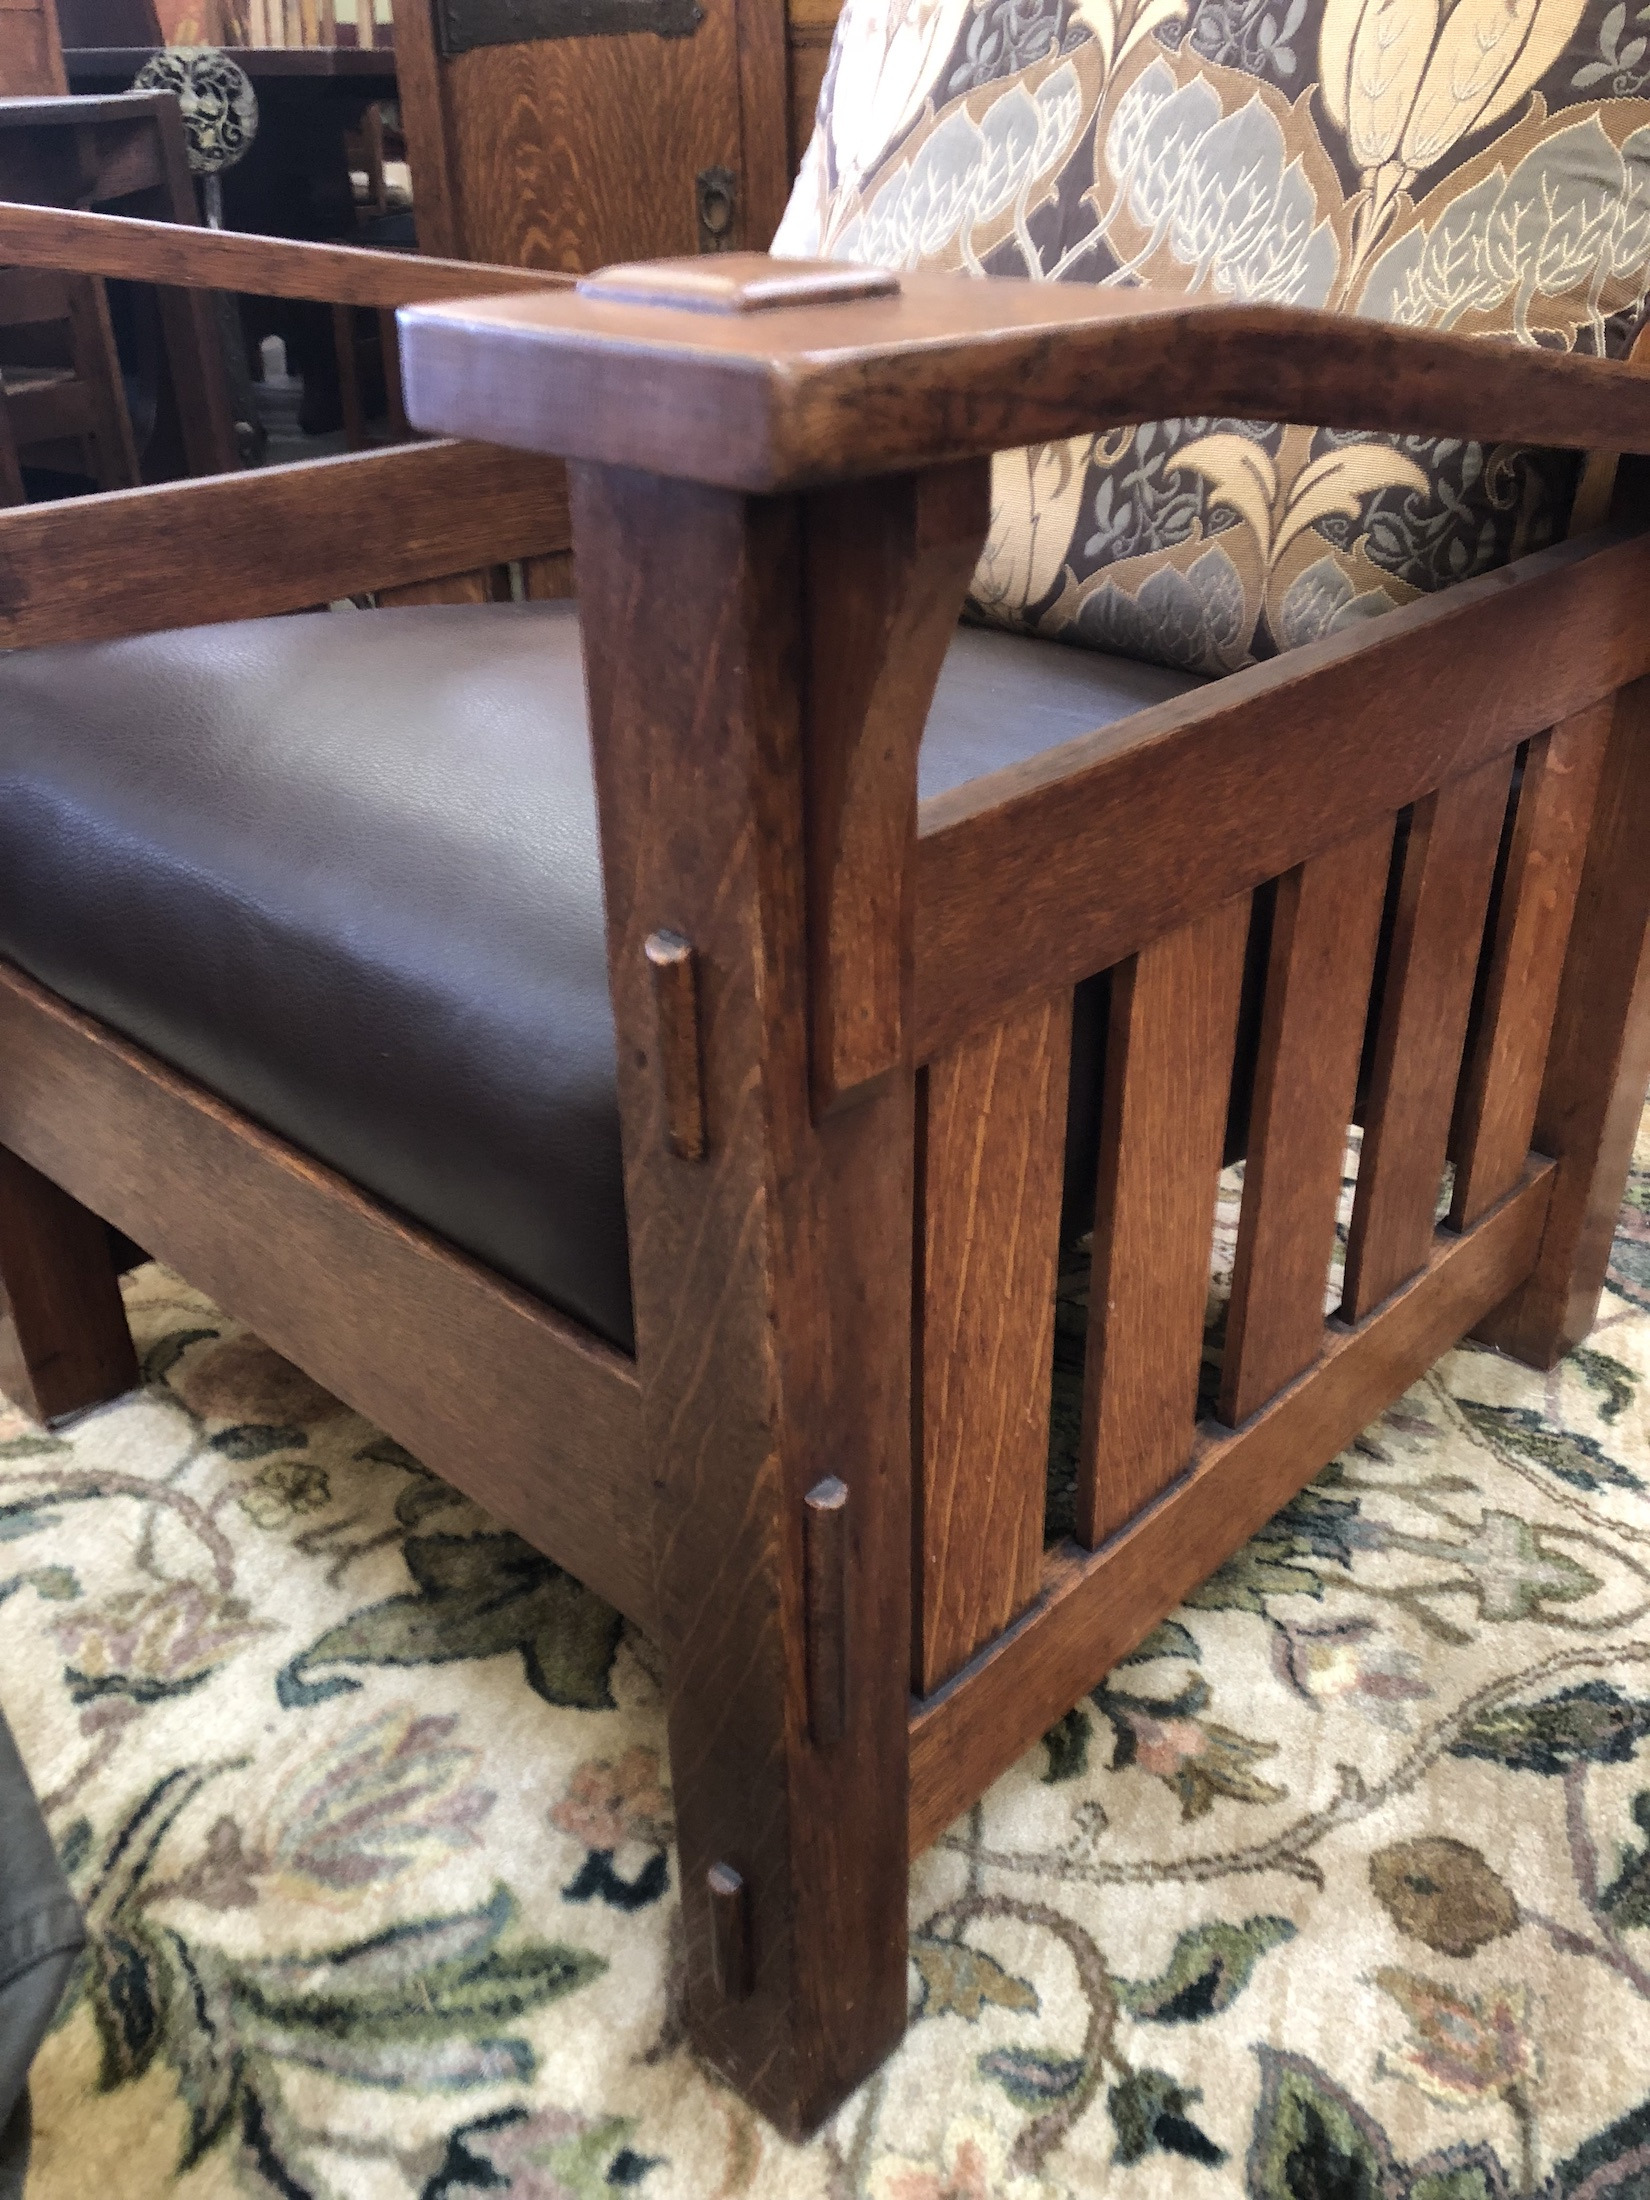 Quaint Art Vintage Morris Chair with leather seat and Arts and Crafts Fabric on back cushion Stickley Era